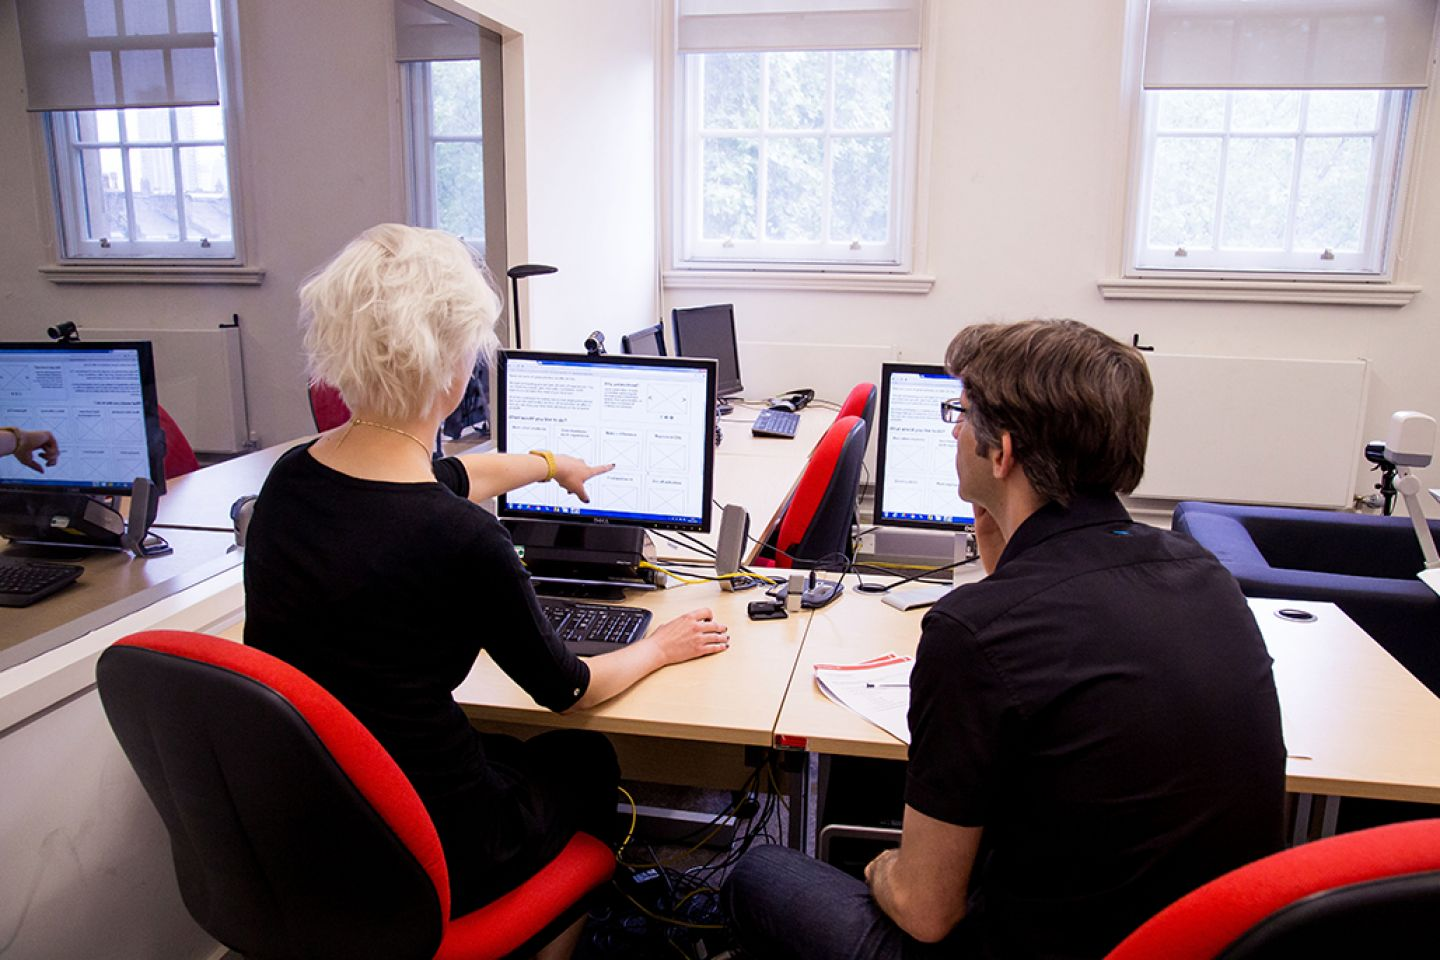 Male conducting user testing with participant on a computer